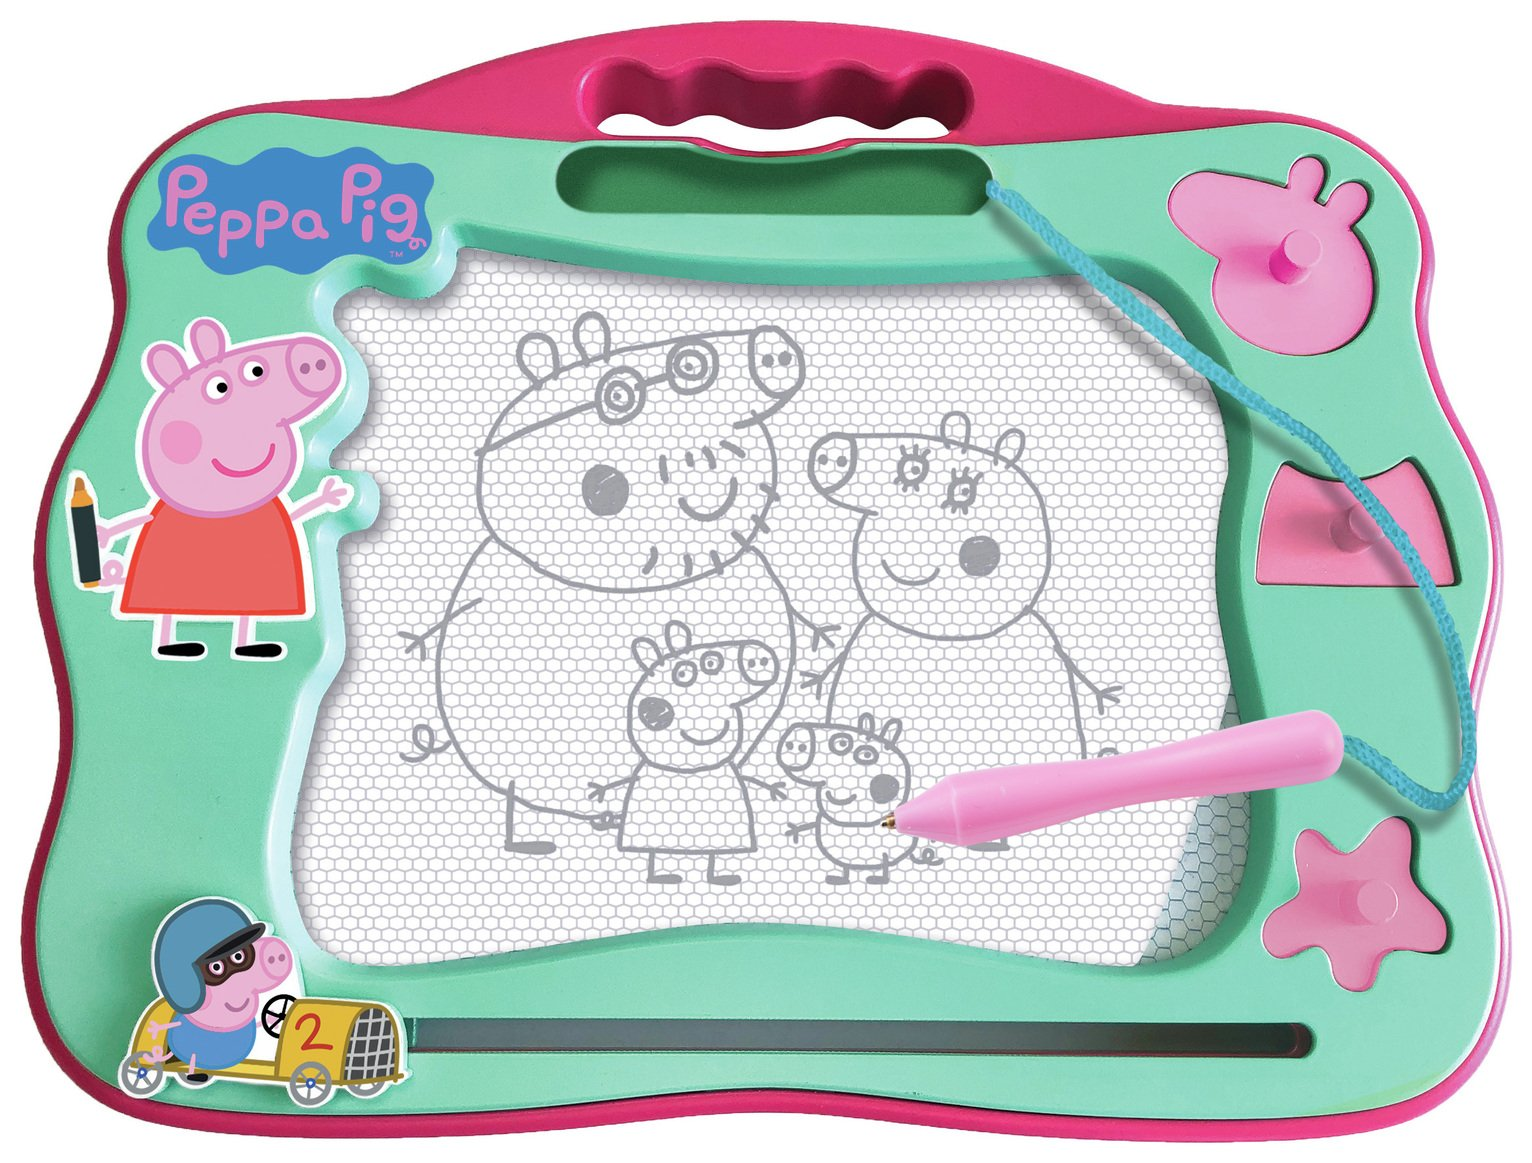 Peppa Pig Magna Doodle from Peppa pig